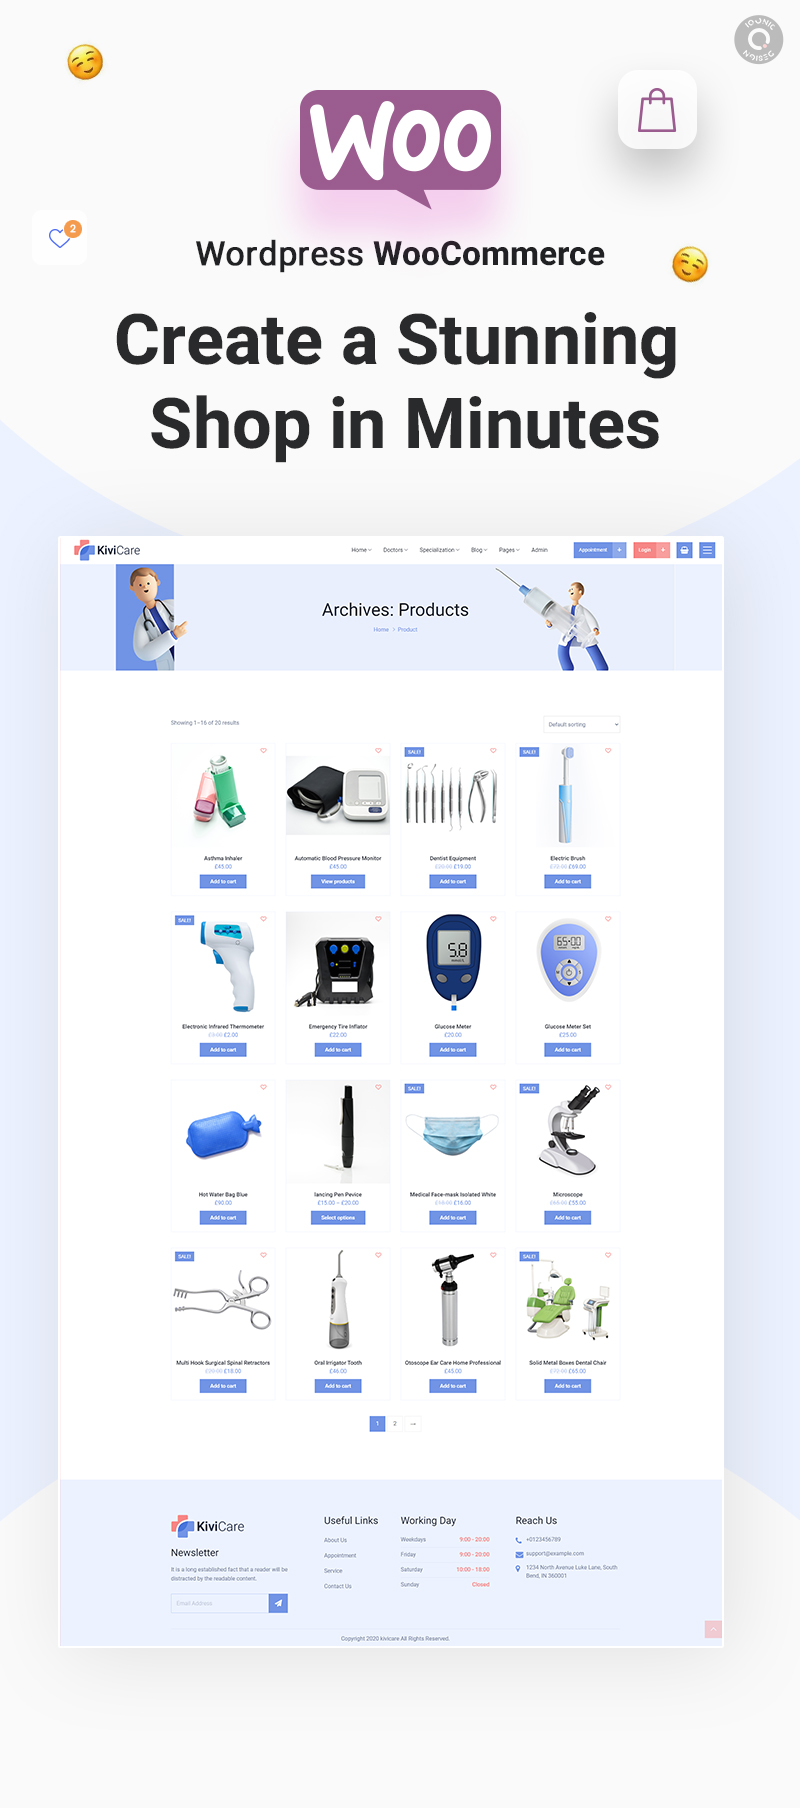 Complete Clinic Management Solution   KiviCare   Iqonic Design medical clinic and patient management wordpress theme KiviCare woocommerce